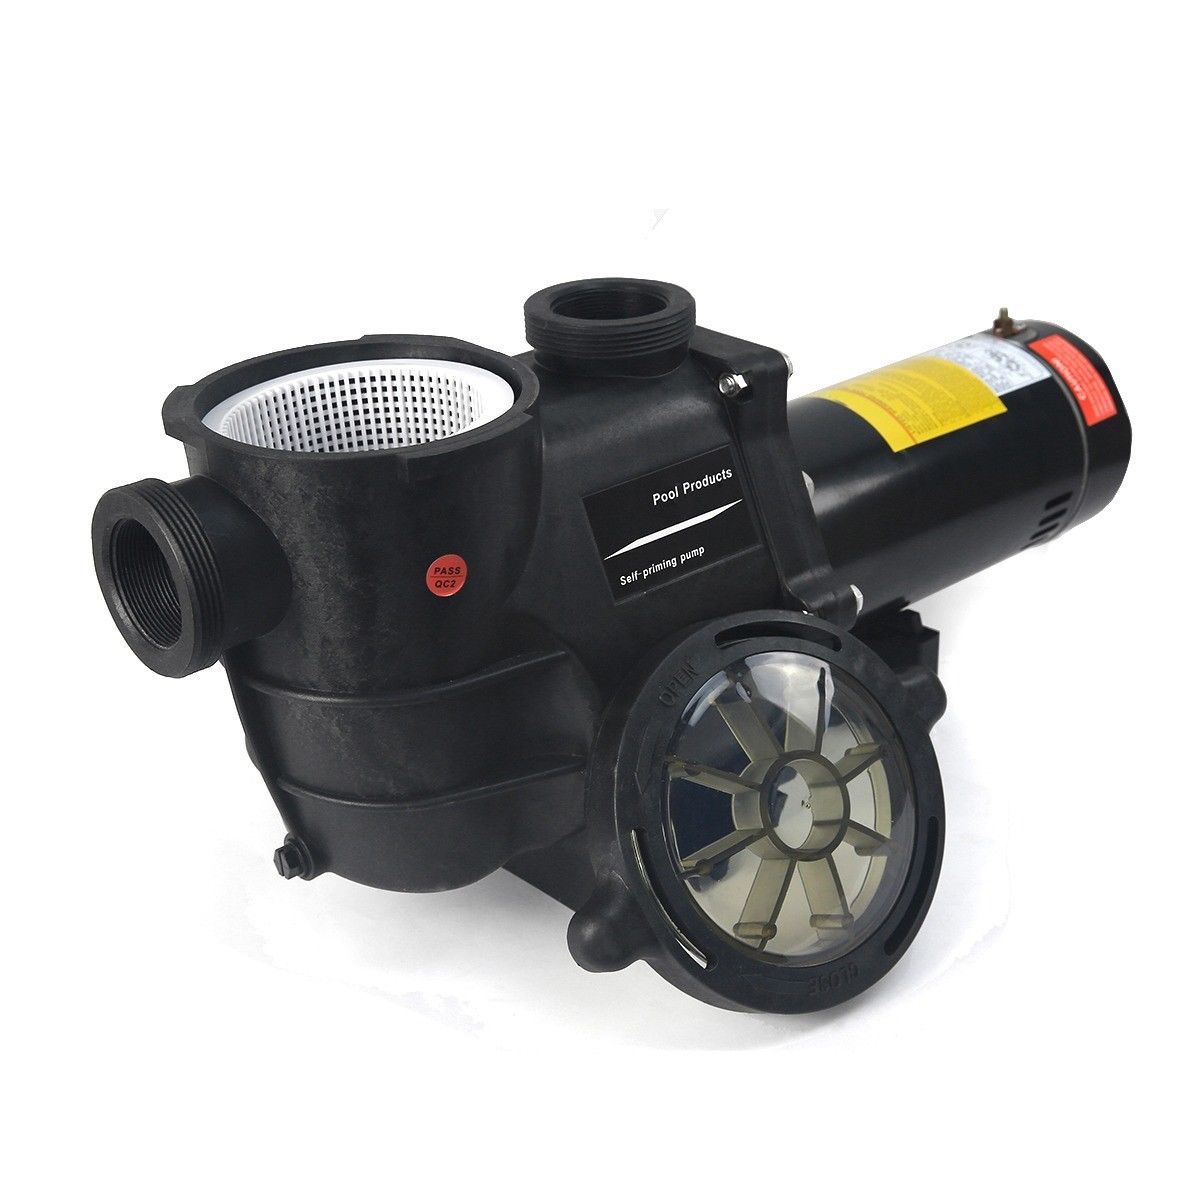 Best Pool Pumps - CNCShop 2 HP INGROUND ABOVE GROUND SWIMMING POOL Review